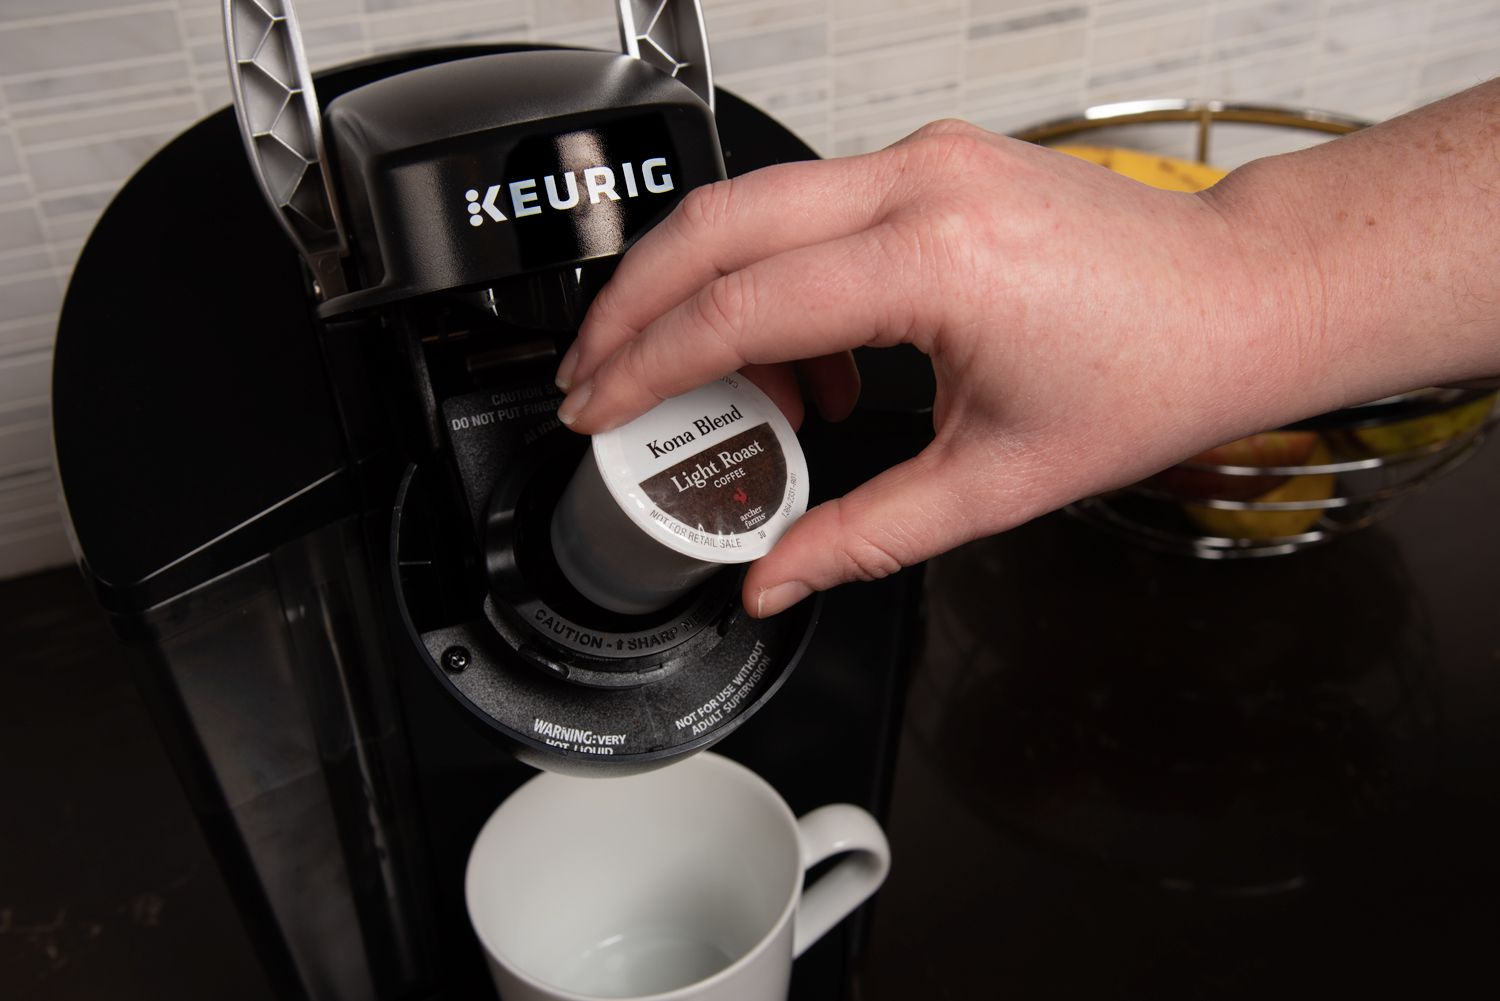 Keurig K55 K-Classic Coffee Maker Review: Lightning Fast but Noisy